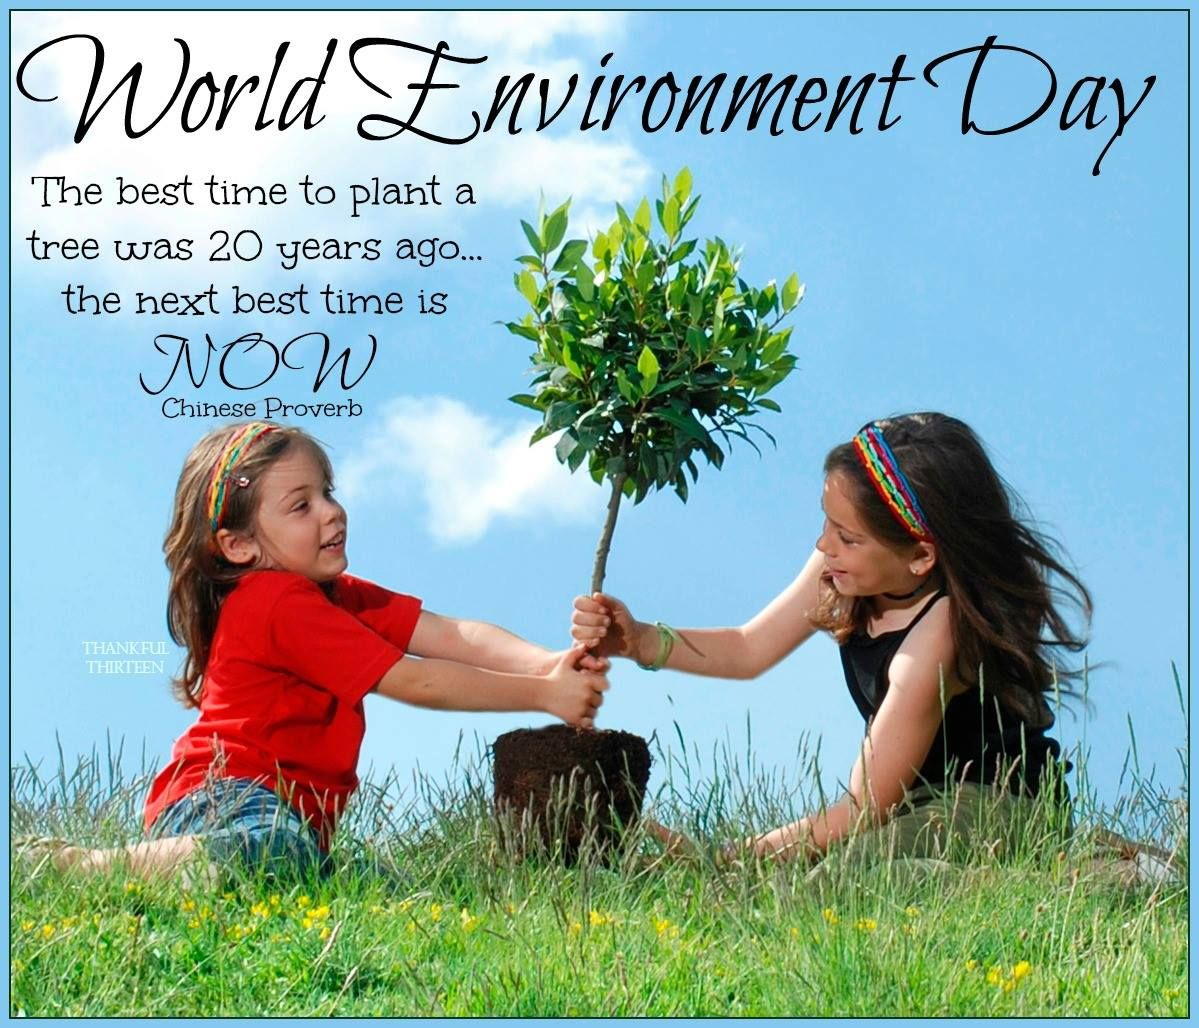 essay on world environment day druggreport35 web fc2 com essay on world environment day